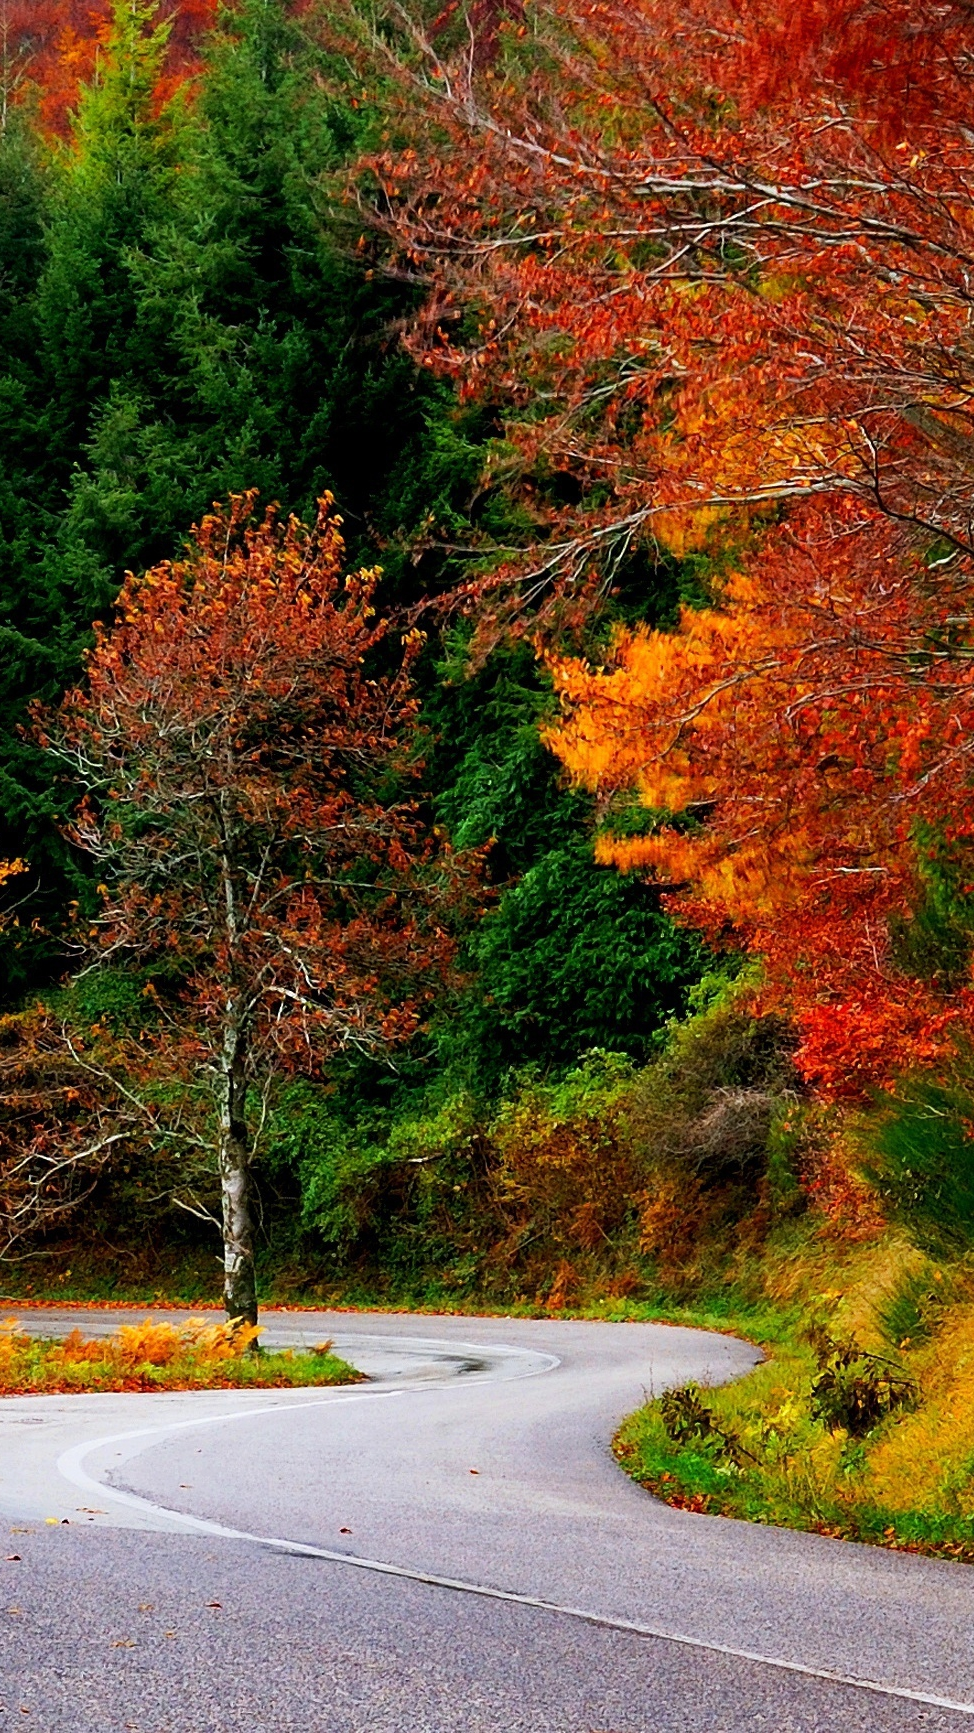 Beautiful Fall Wallpapers For Desktop Forest Autumn Fall Road Leaves Trees Colorful Nature